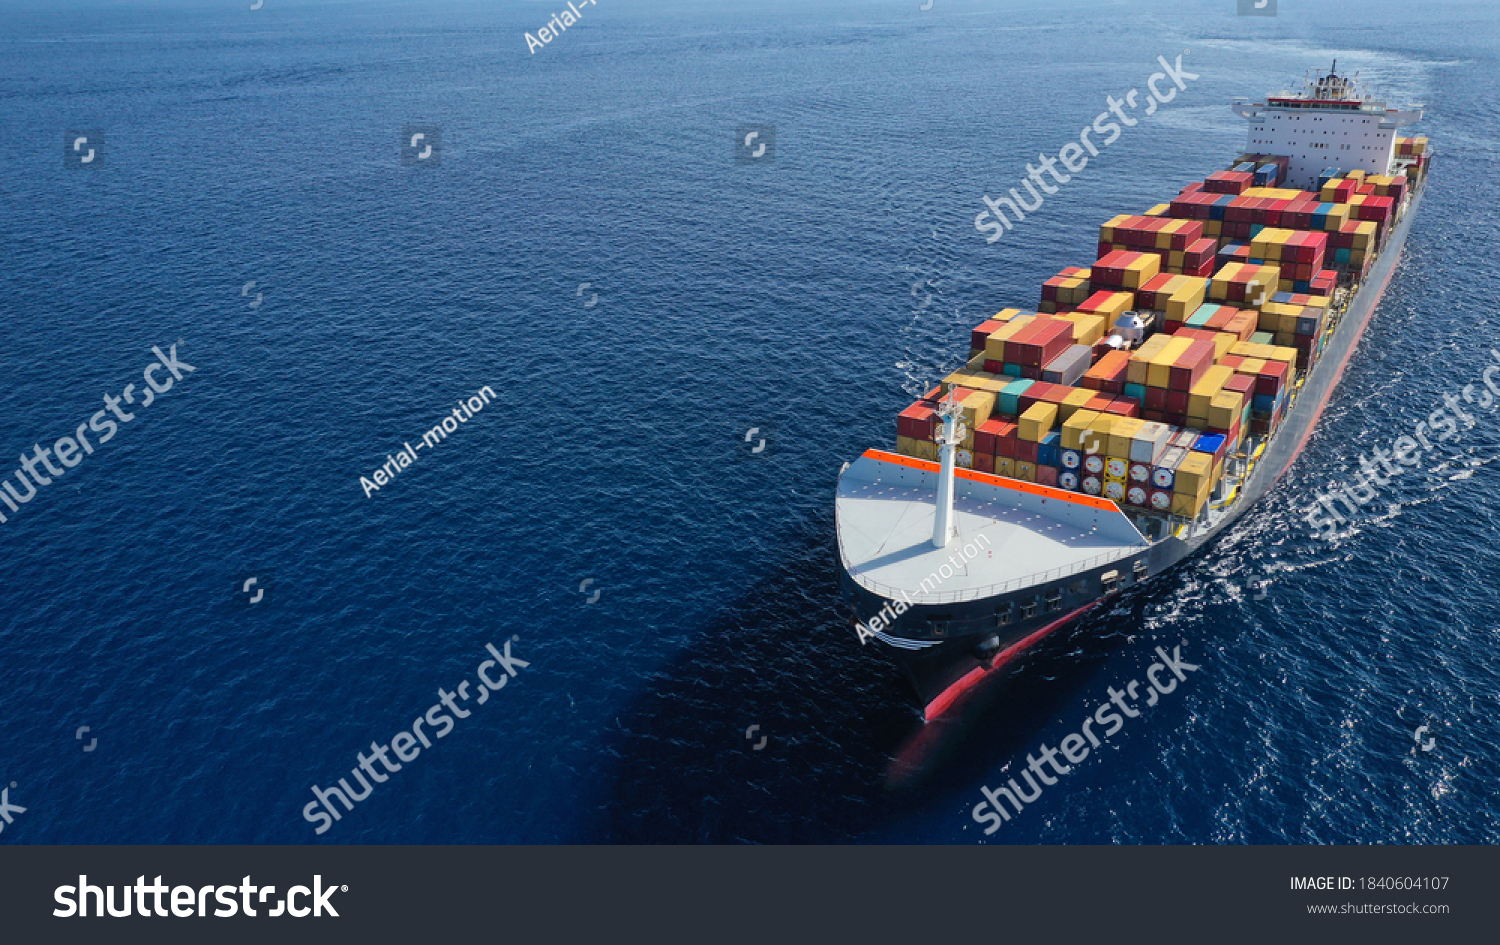 Aerial drone photo of huge container tanker ship carrying truck size colourful containers in deep blue open ocean sea #1840604107